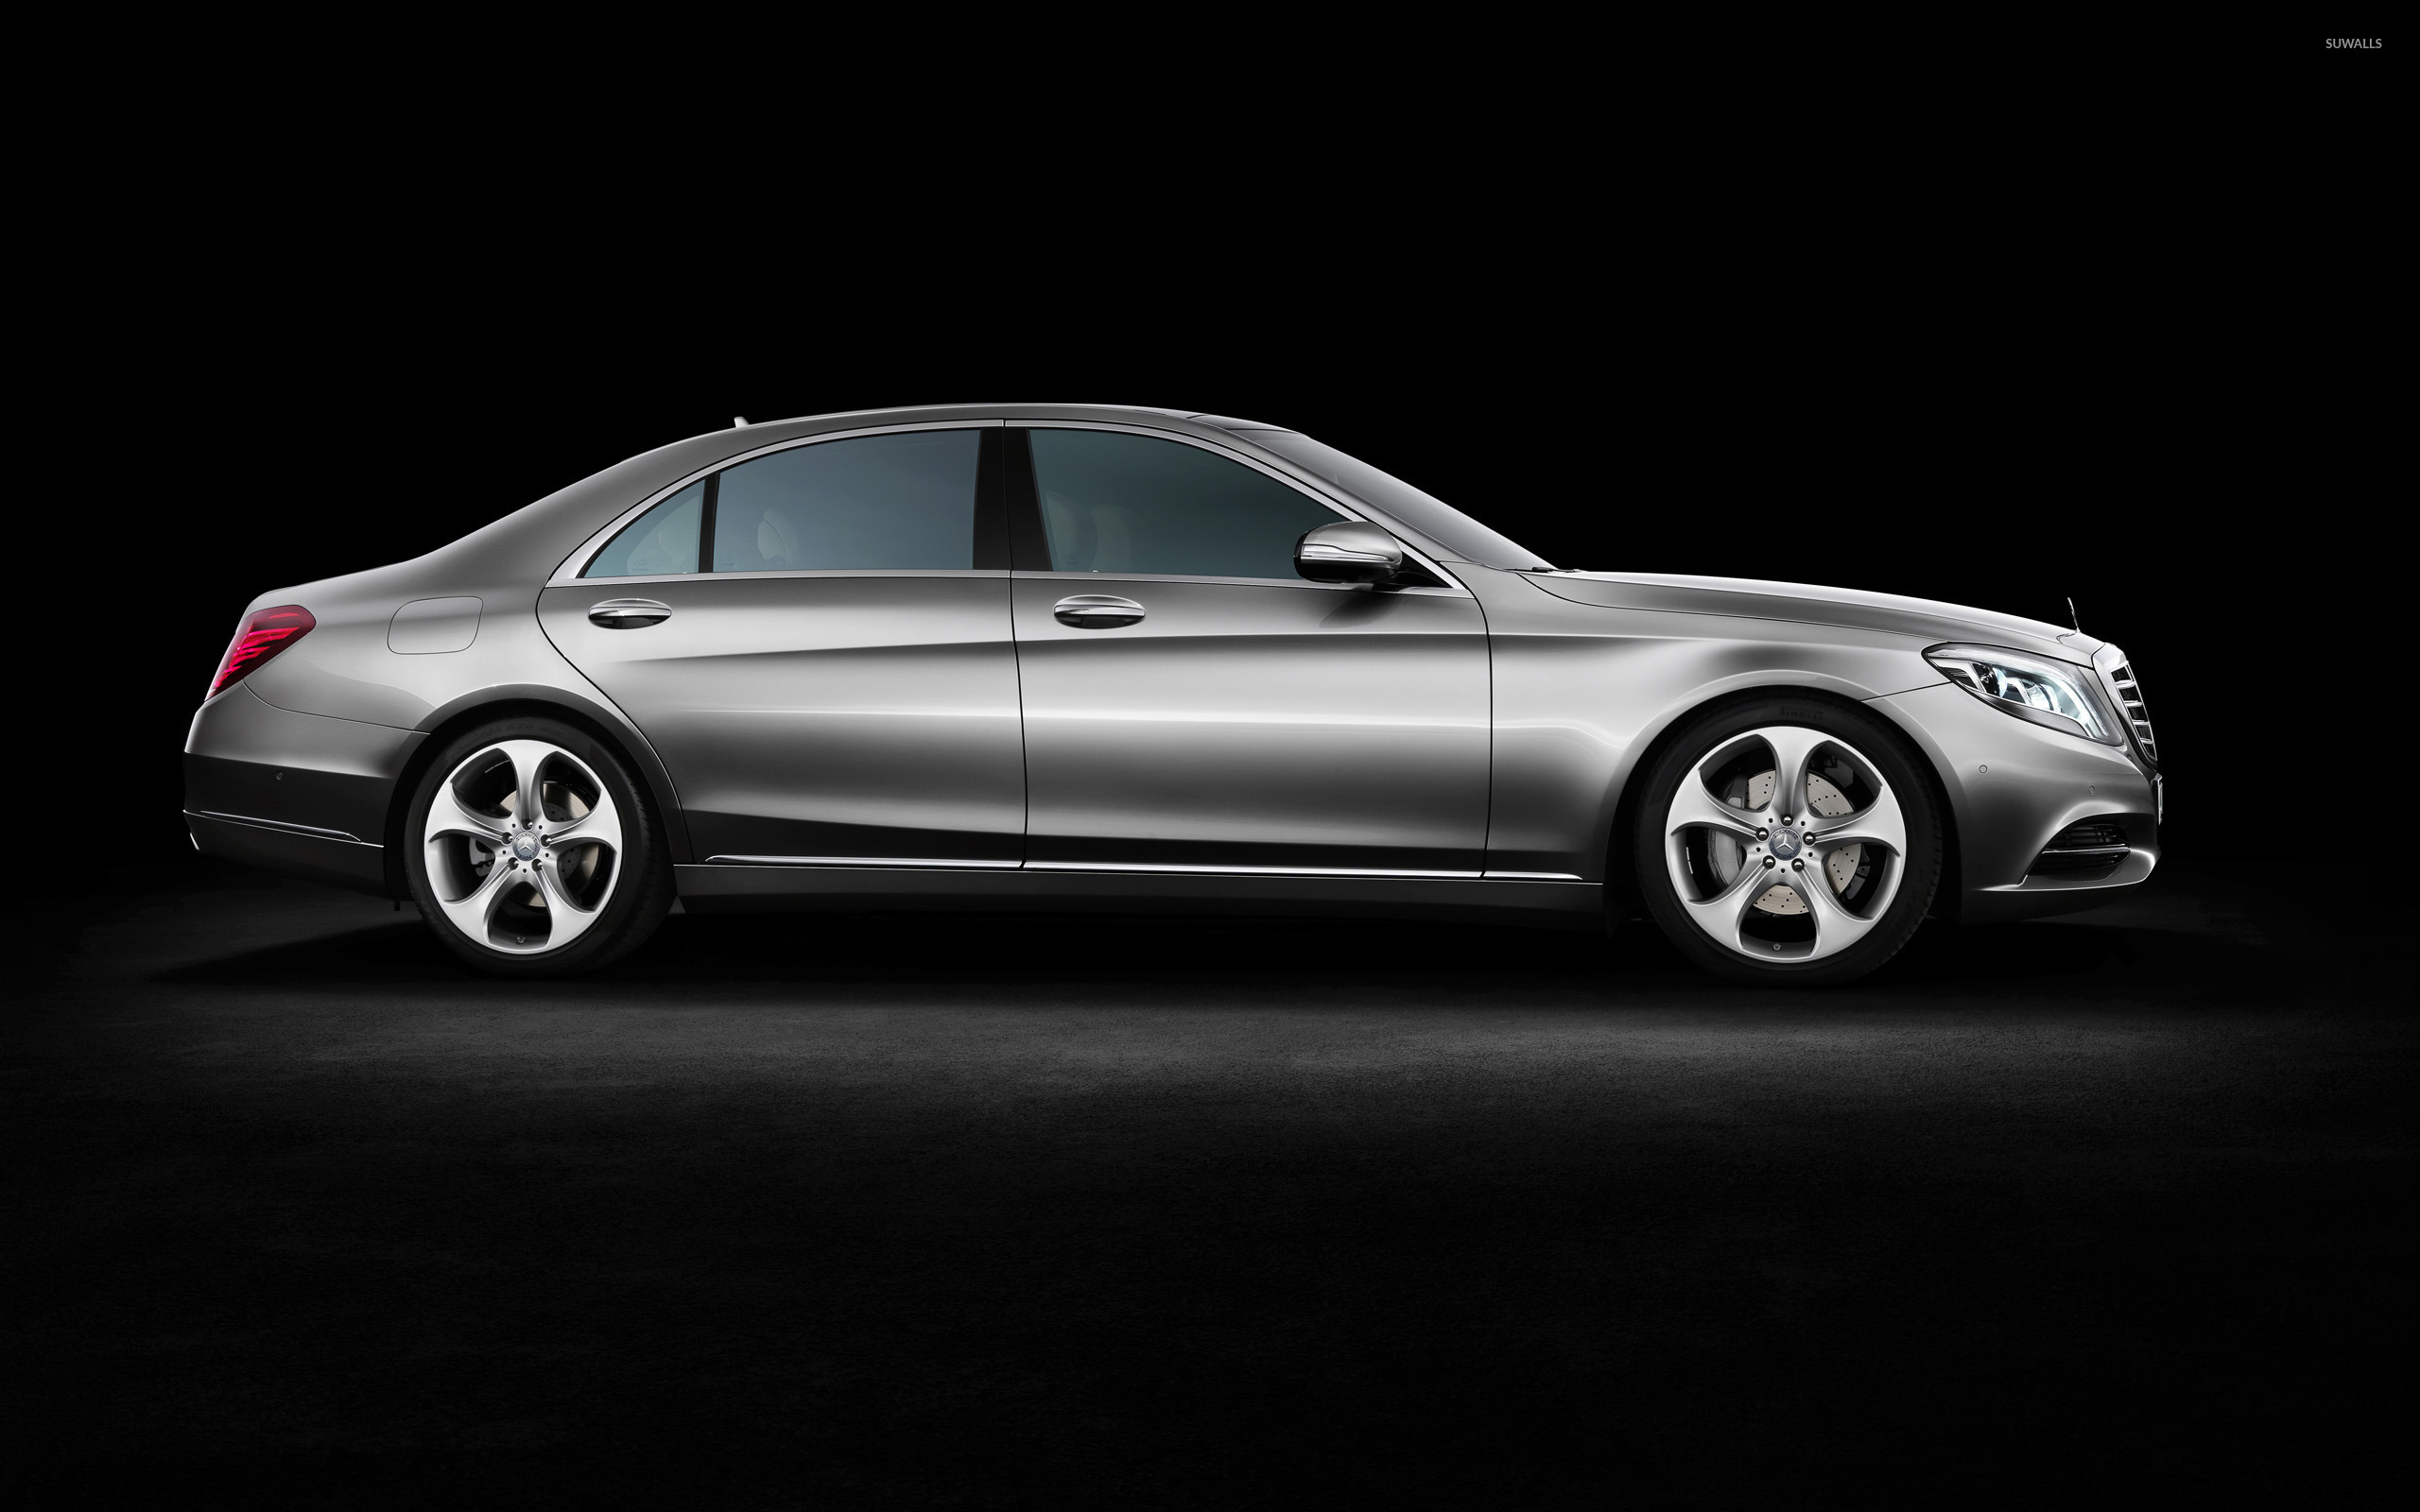 2013 mercedes benz s class 4 wallpaper car wallpapers for 2013 mercedes benz s class s550